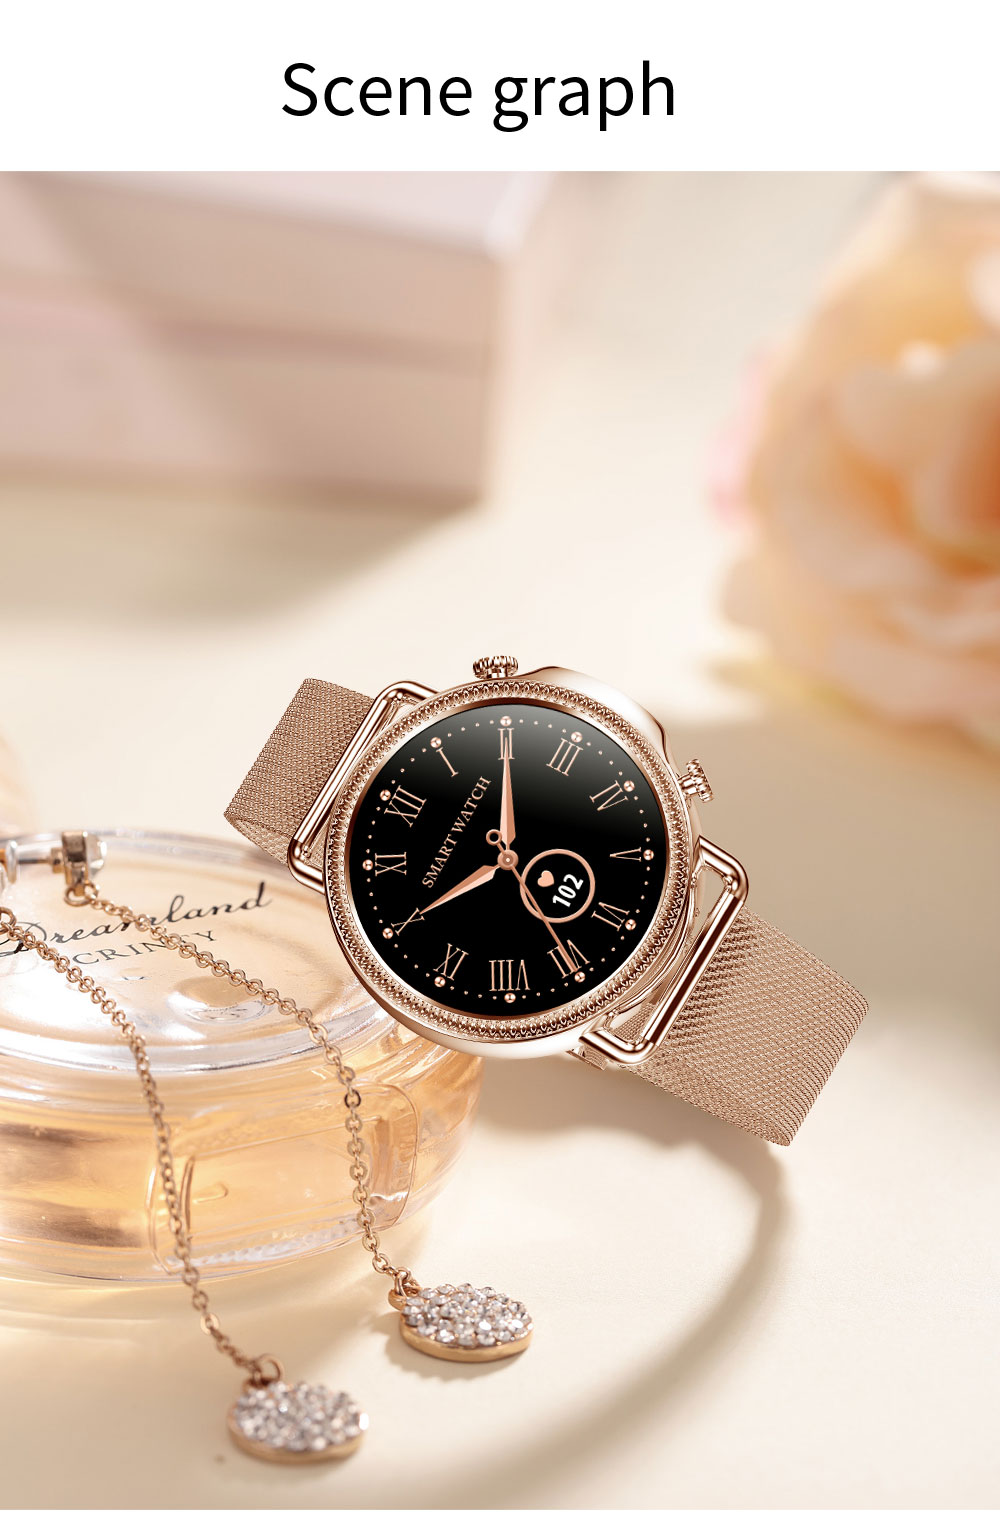 H794a98334d2c480b96c9761f14ab7d303 2021 Women Smart Watch 1.28 inch HD Screen IP67 Waterproof Lady's Watches Body Temperature Heart Rate Monitor PK V23